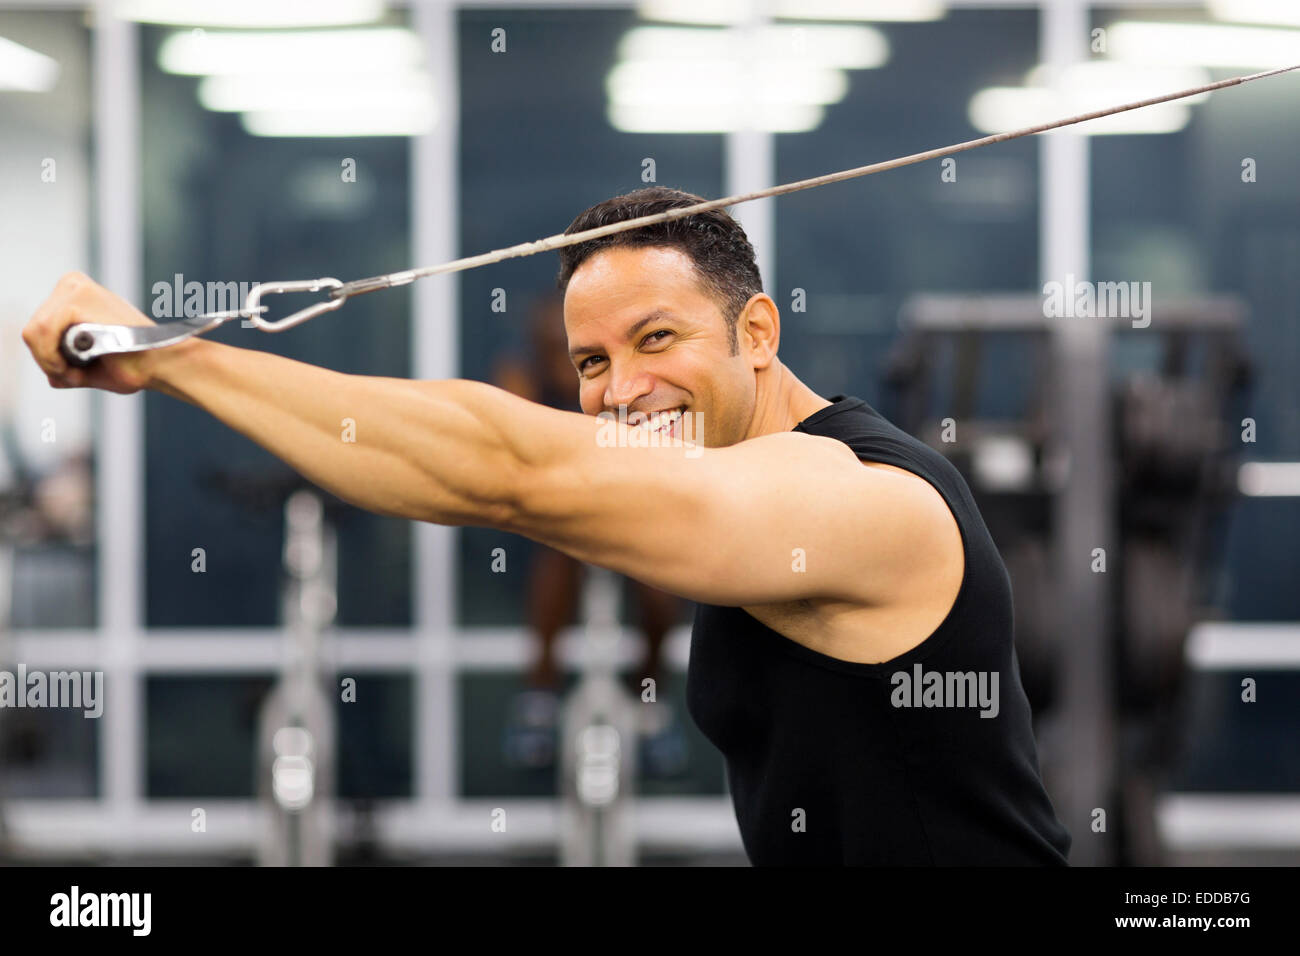 side view of mid age man working out with pull-down machine - Stock Image